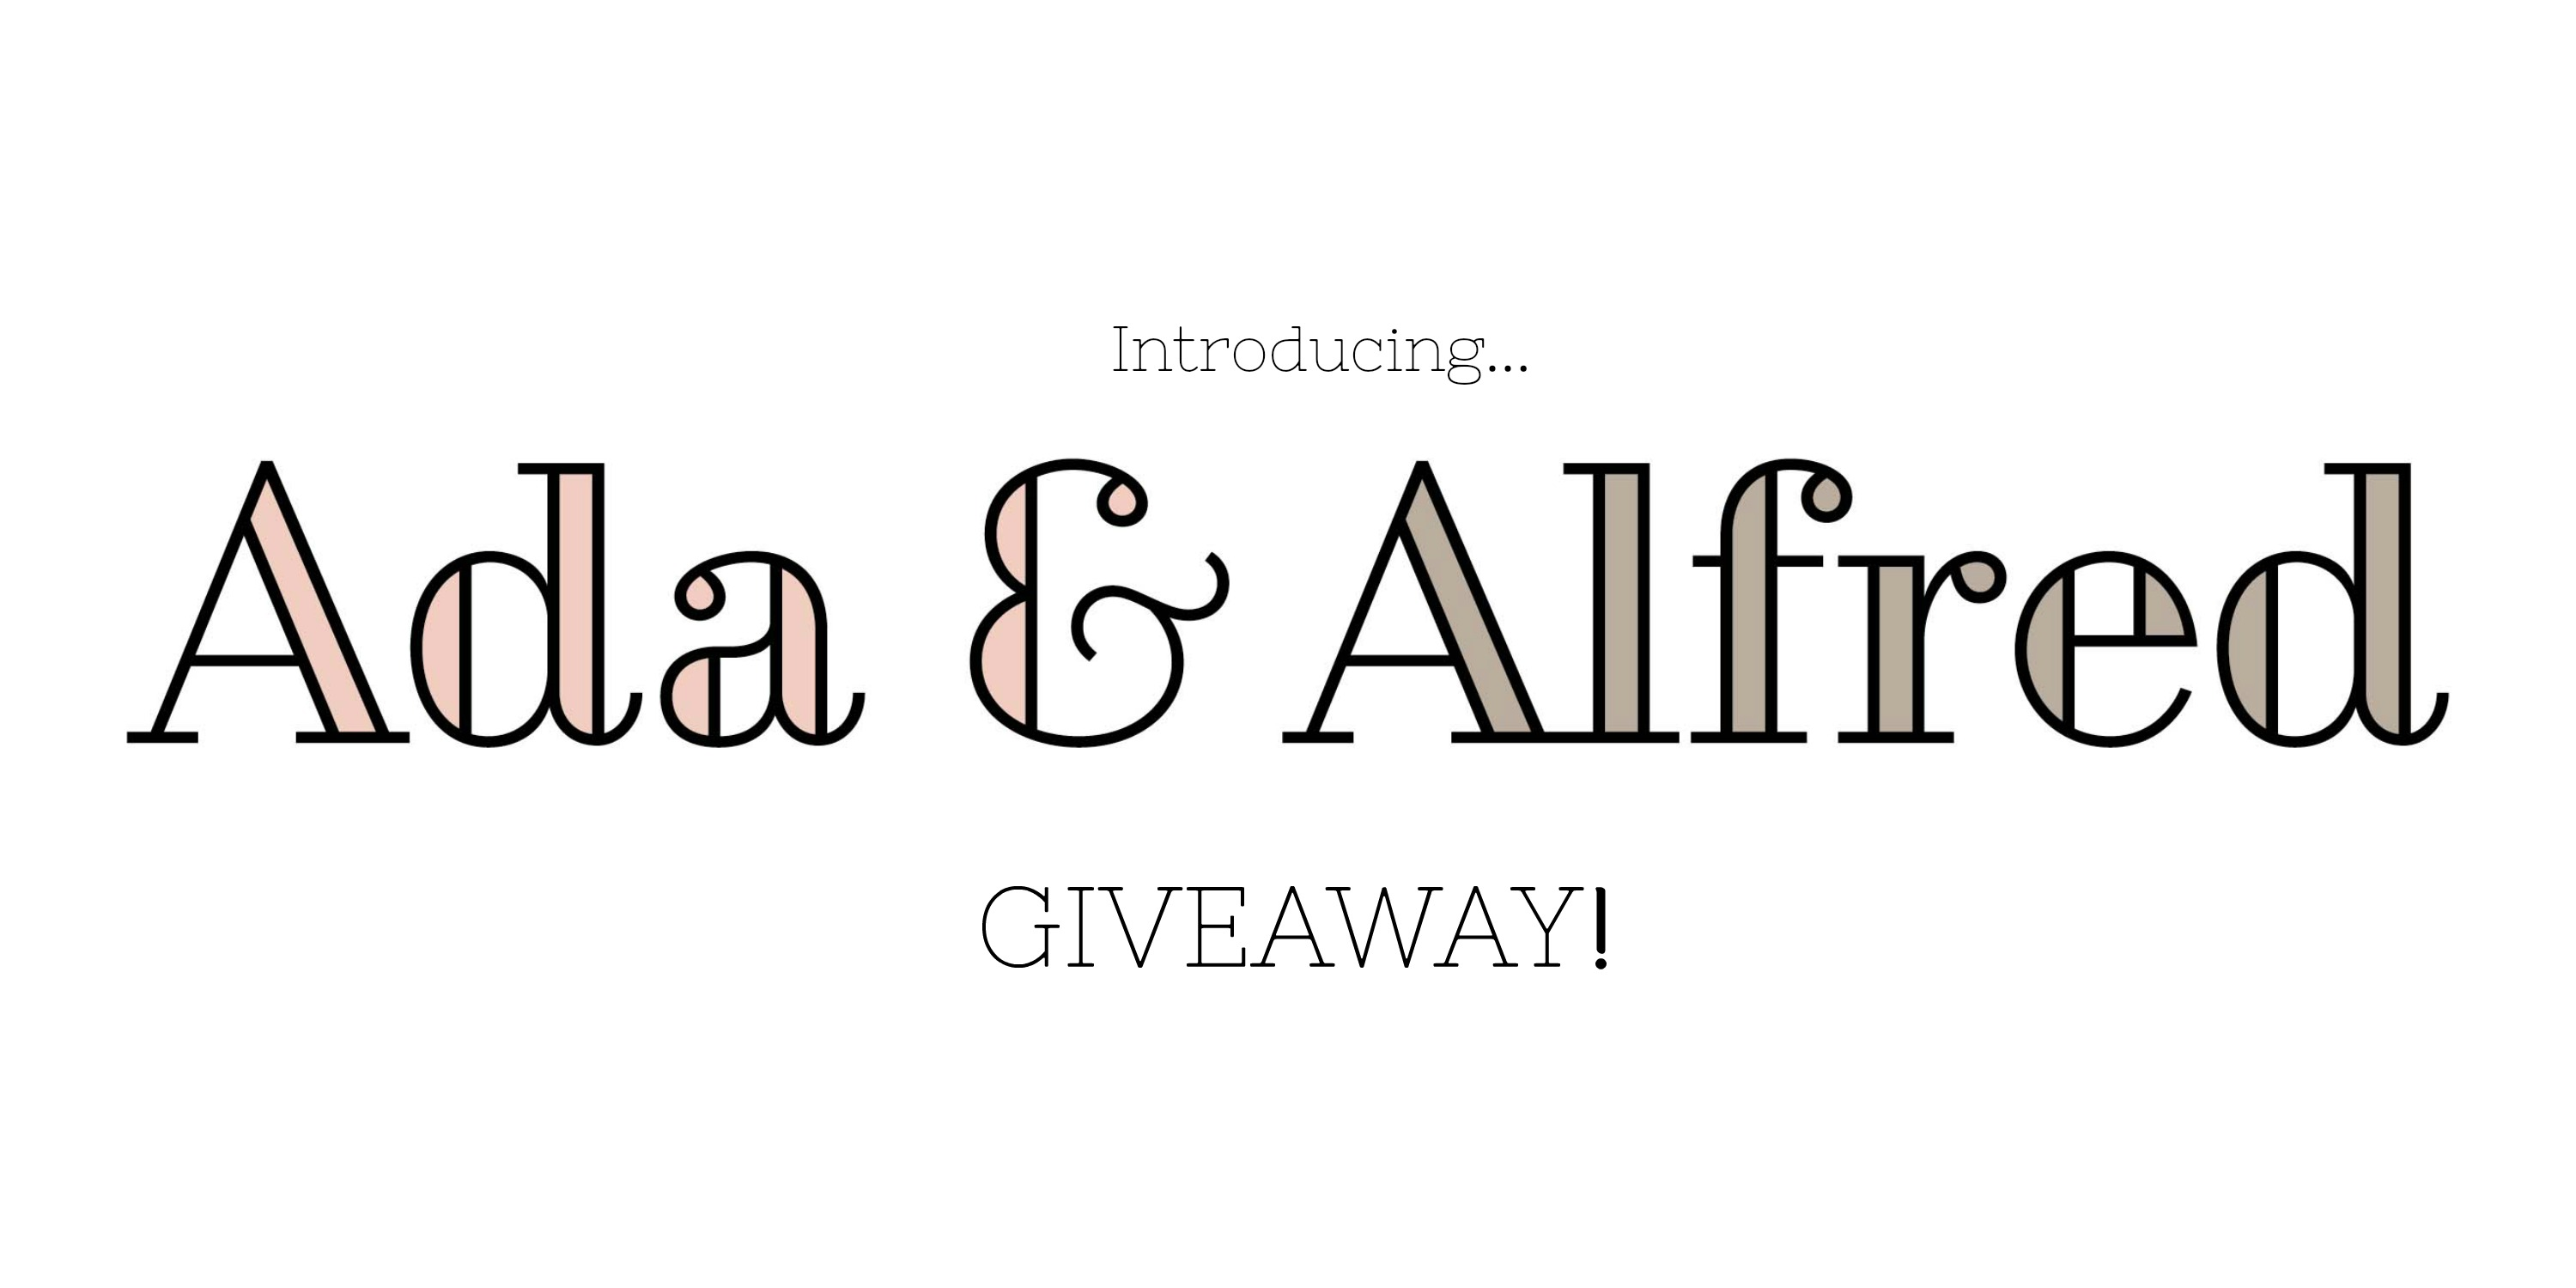 ada and Alfred giveaway title